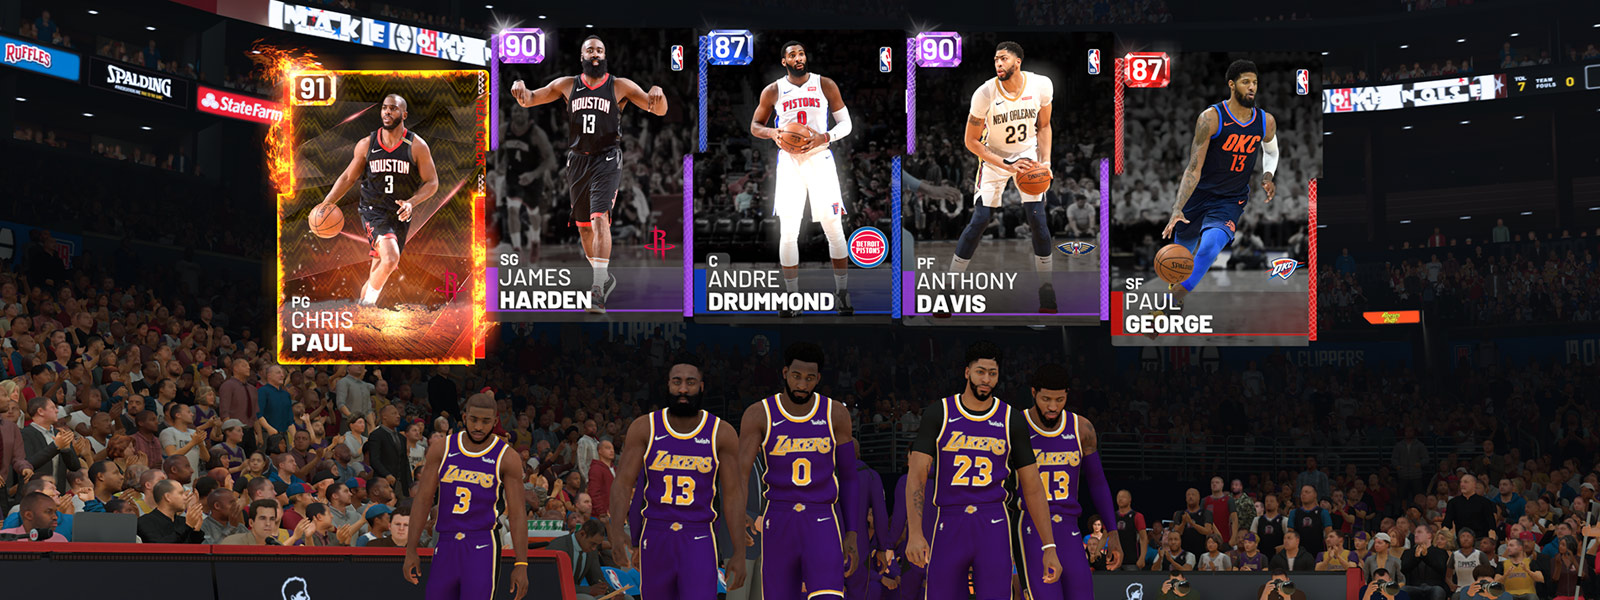 Vue de face de l'équipe des Lakers avec Chris Paul, James Harden, Andrew Drummond, Anthony Davis et Paul George